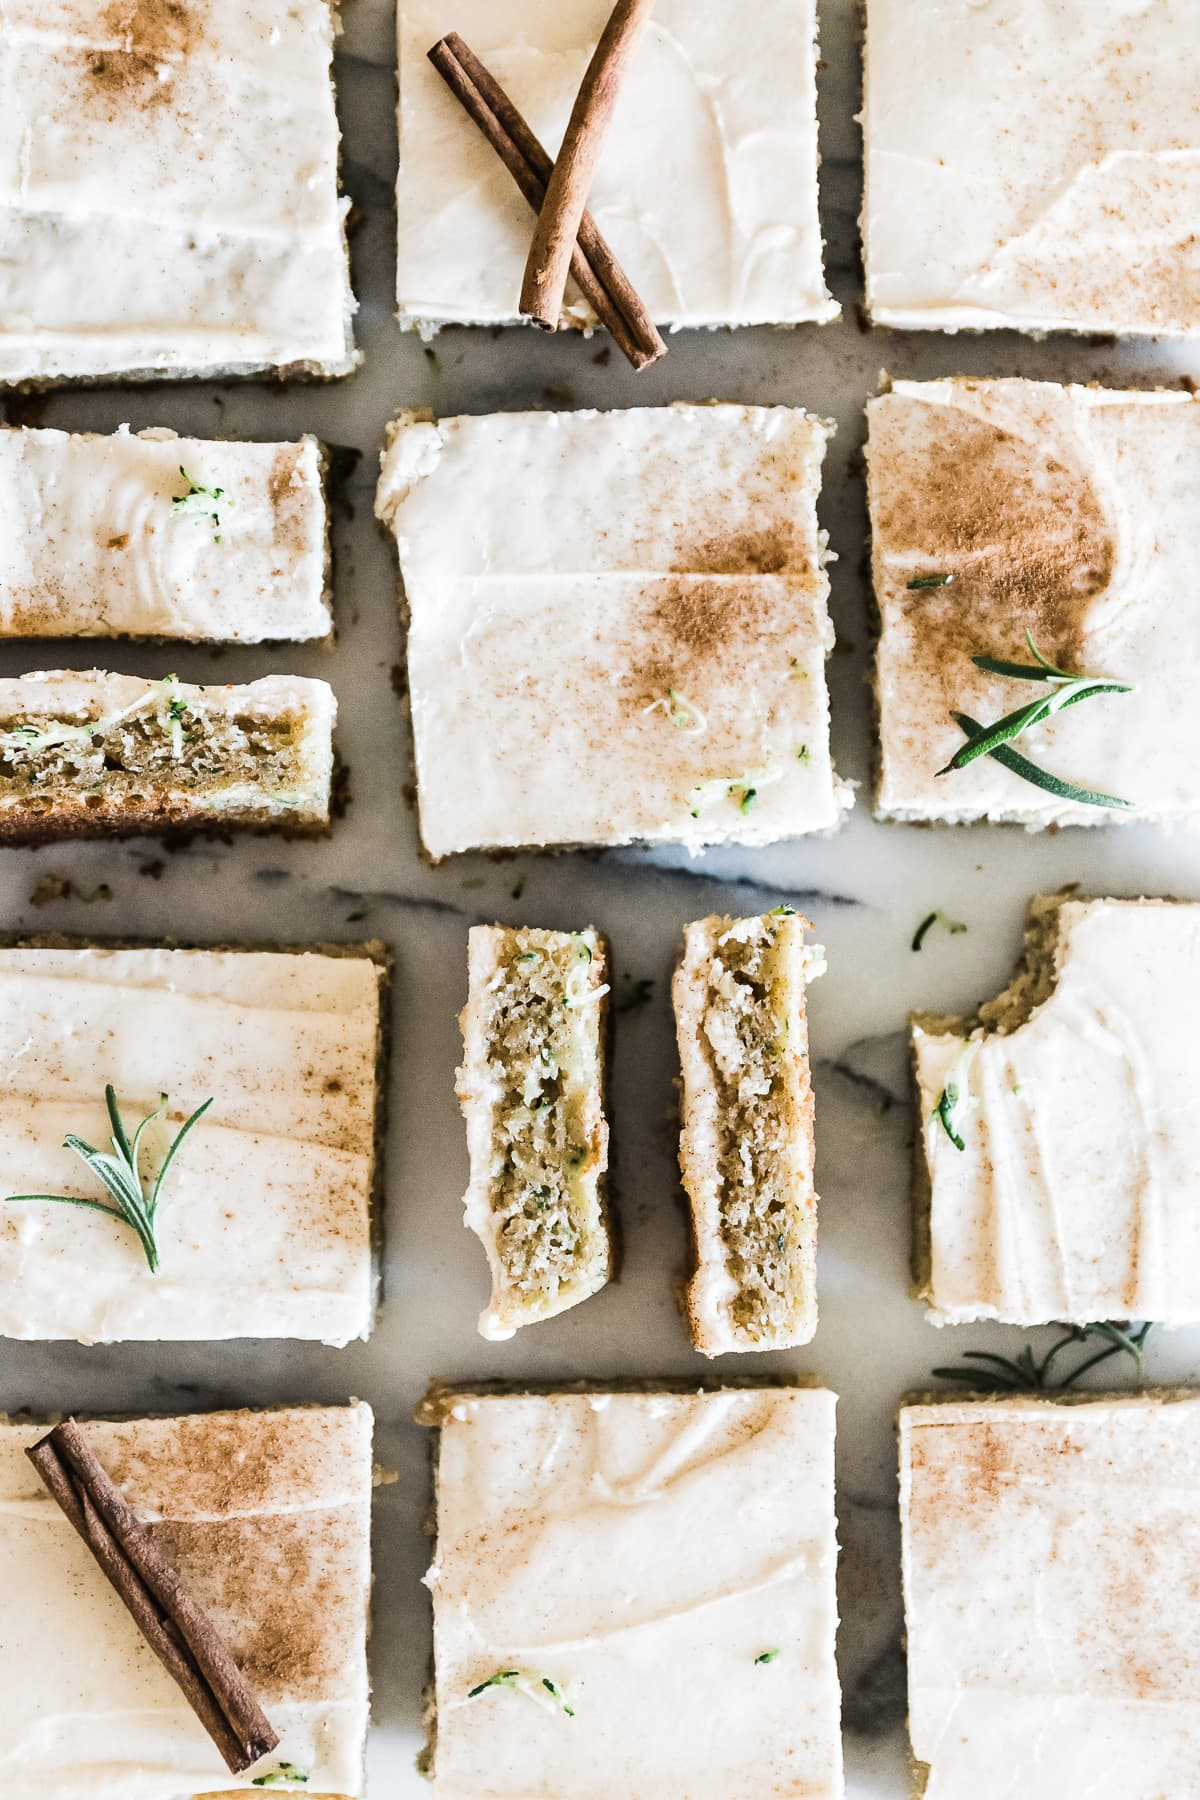 Zucchini bars cut into squares and lined up on a marble counter. They are garnished with cinnamon.